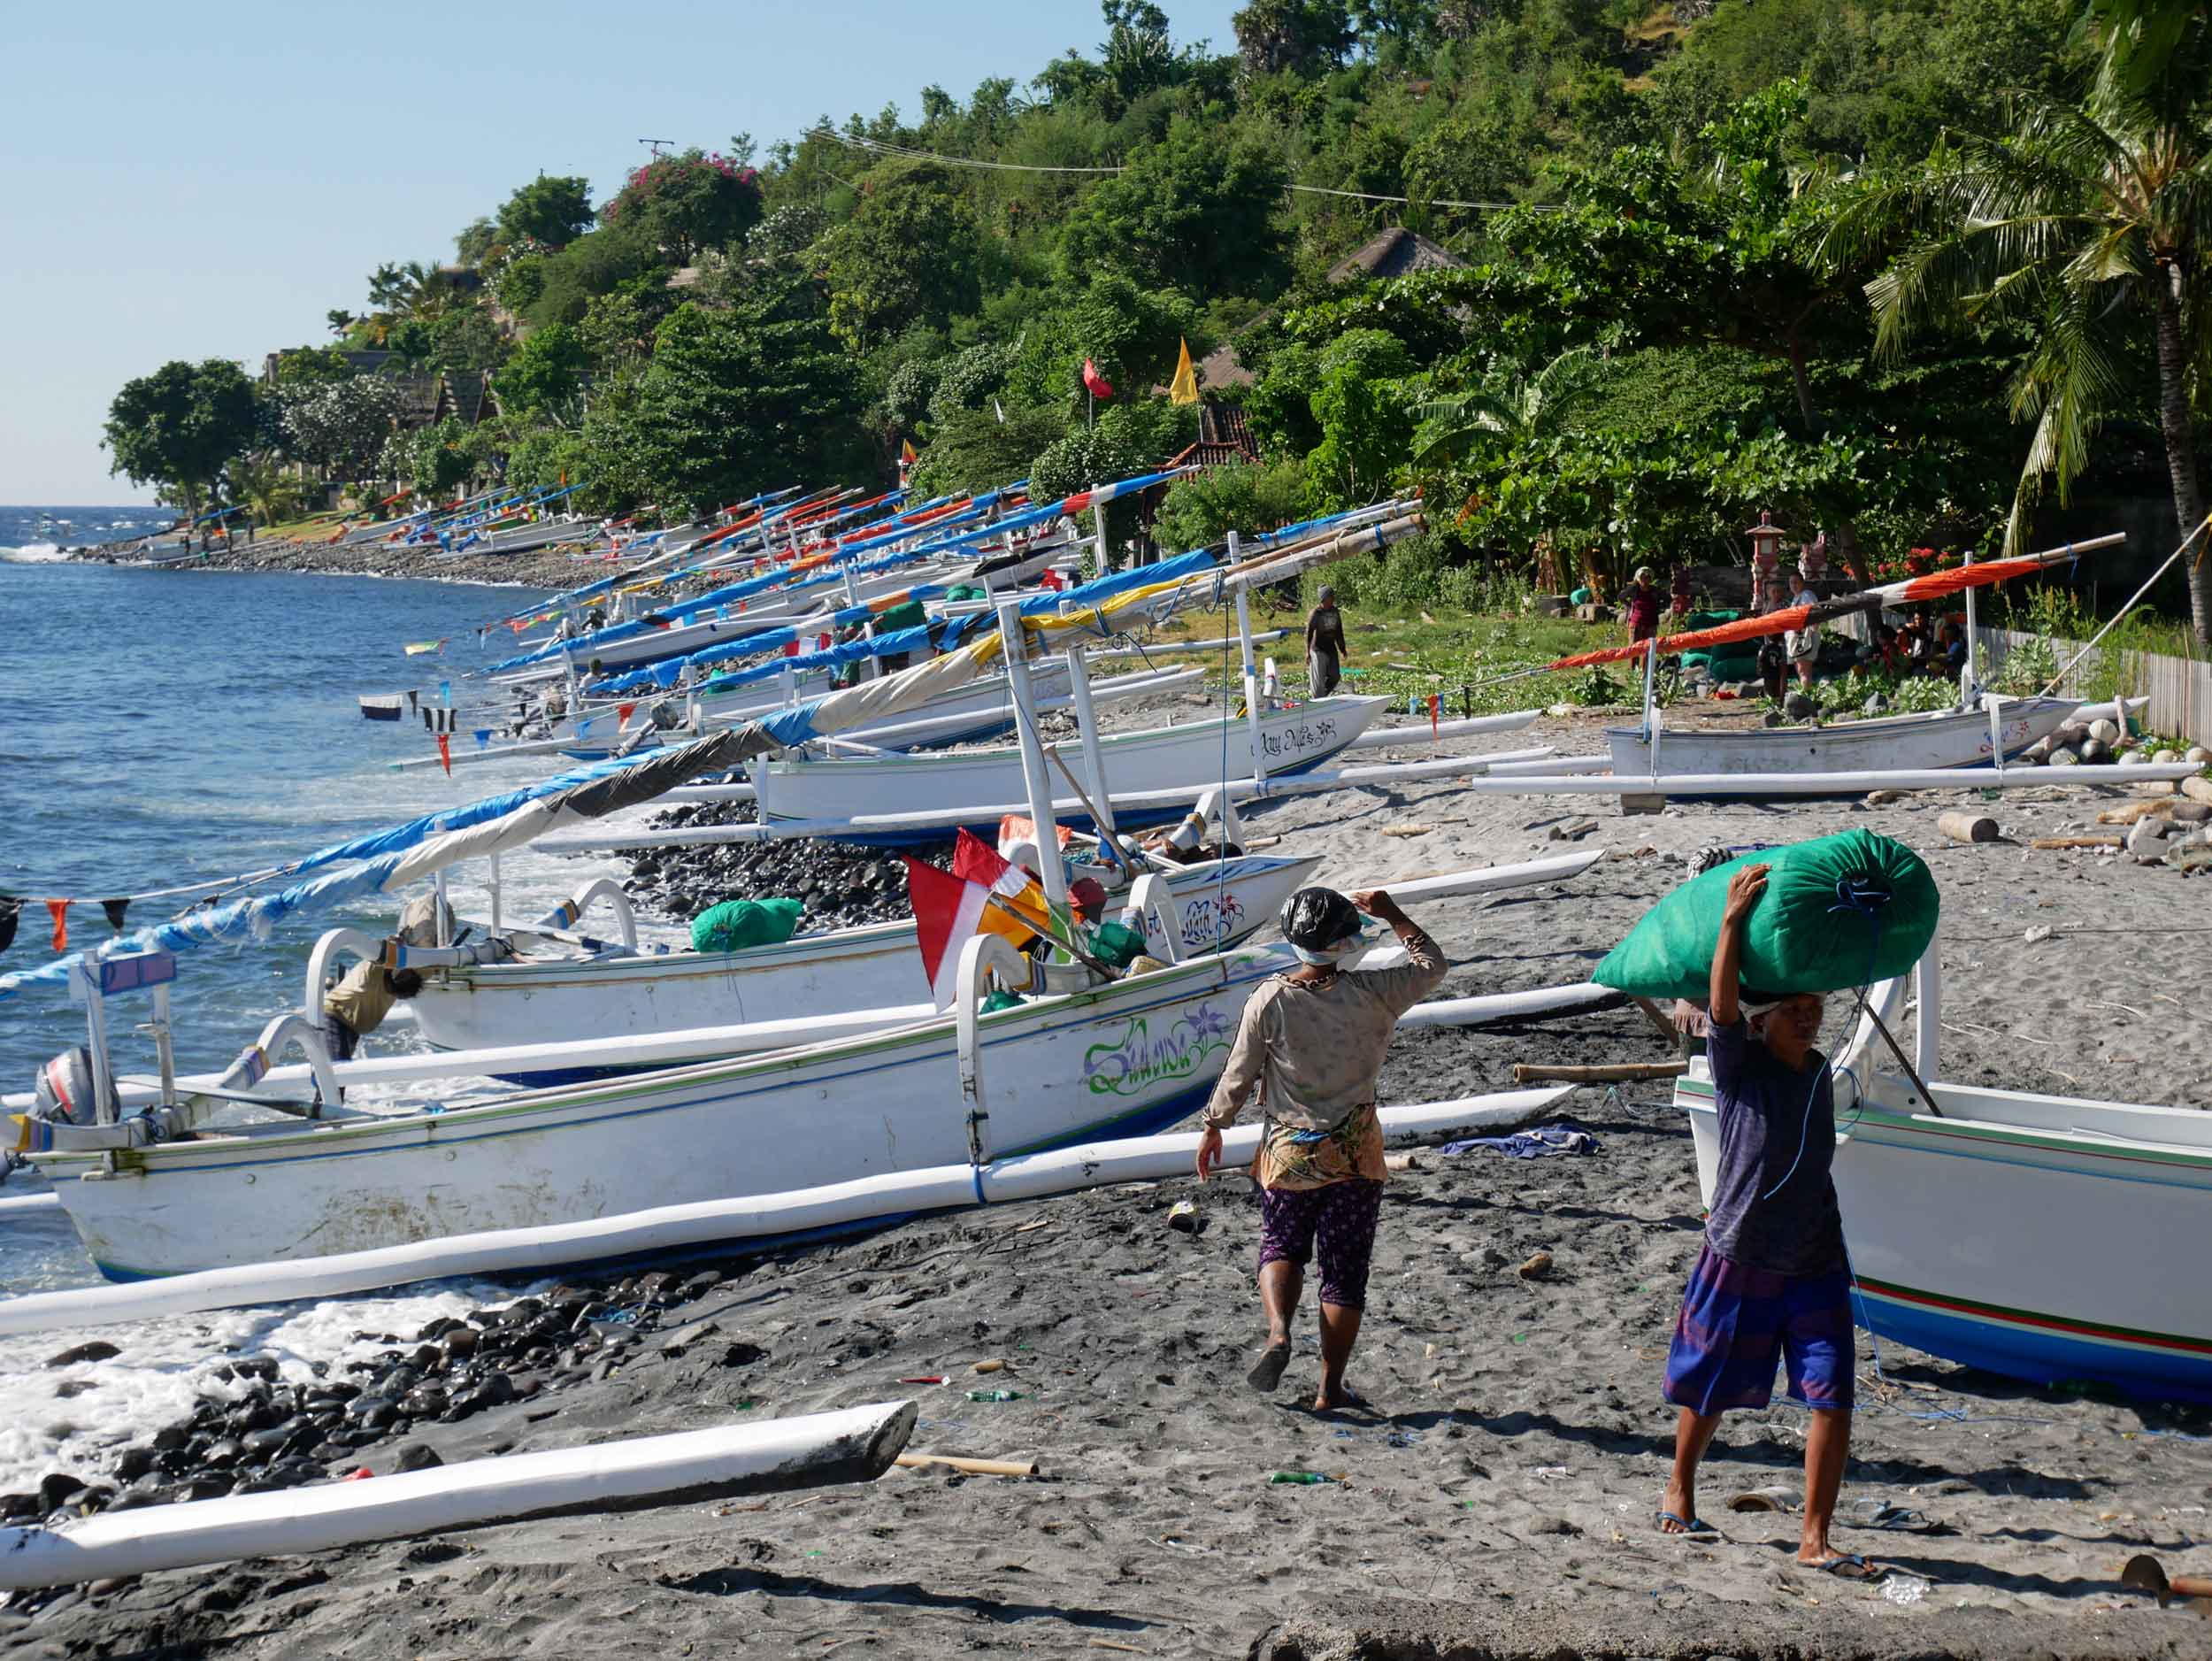 The fishing canoes lined up on shore as local women take in bags of freshly caught fish.